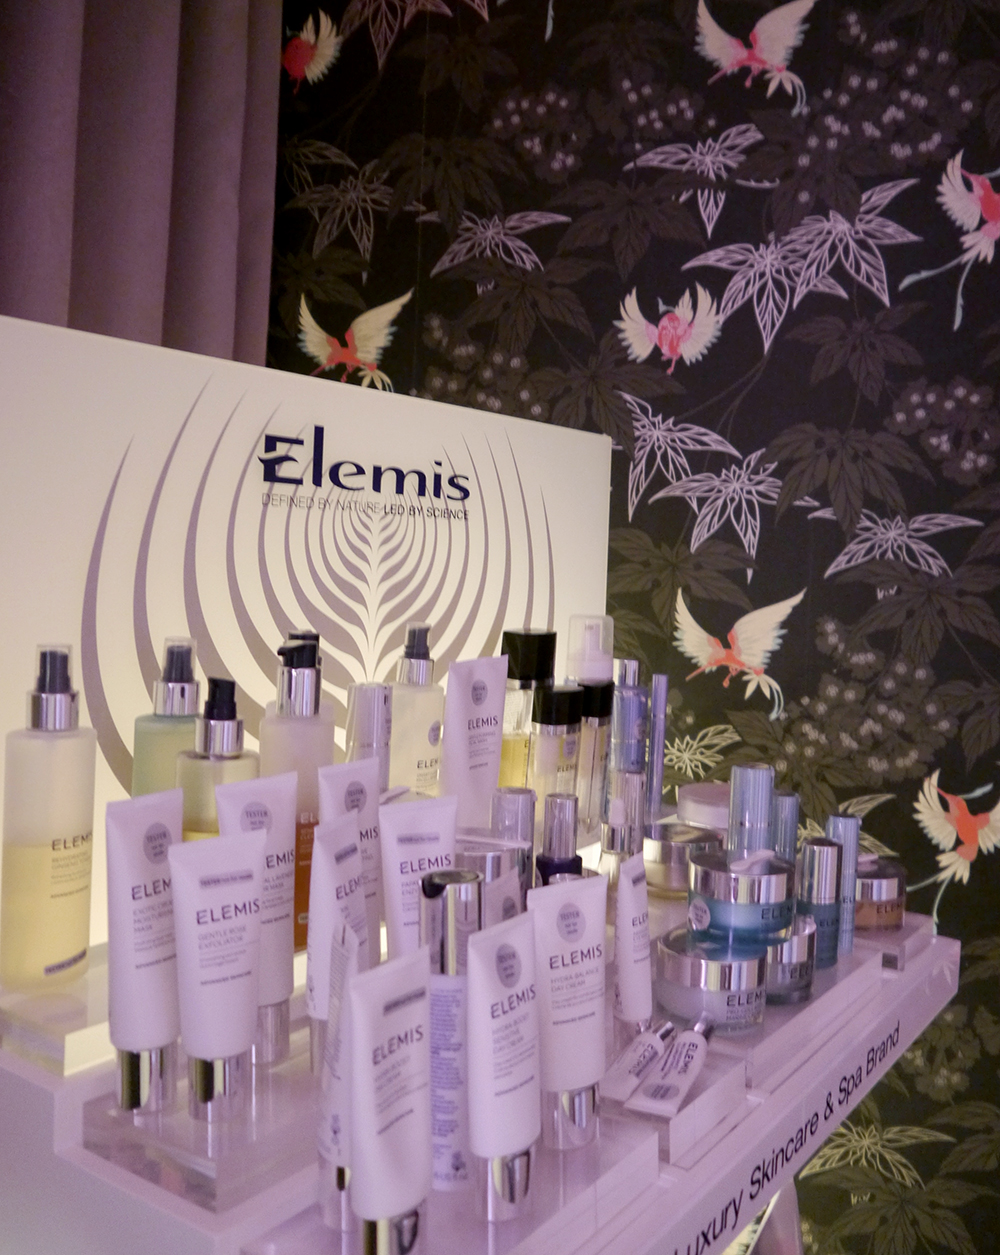 Elemis products in the You Spa